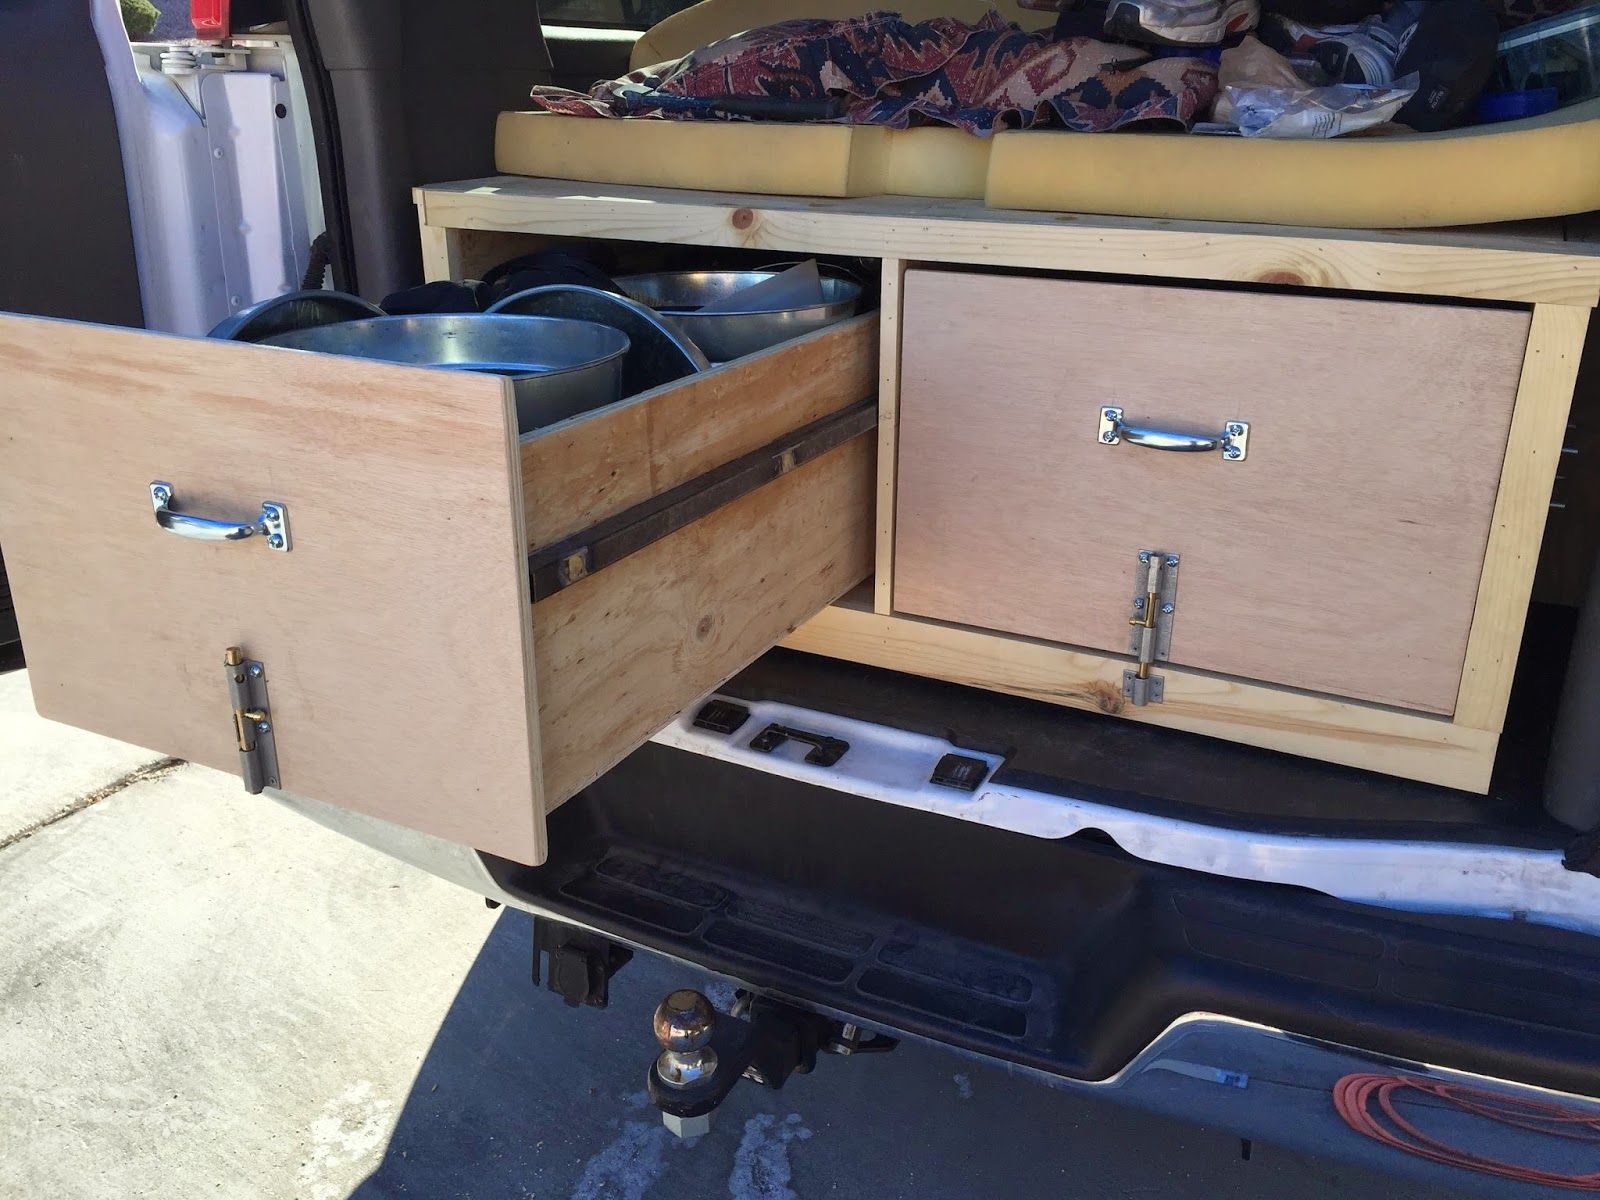 Outdoor Kitchen Drawers Appliance Deals Toponautic News Events Recipes Diy Chevy Van